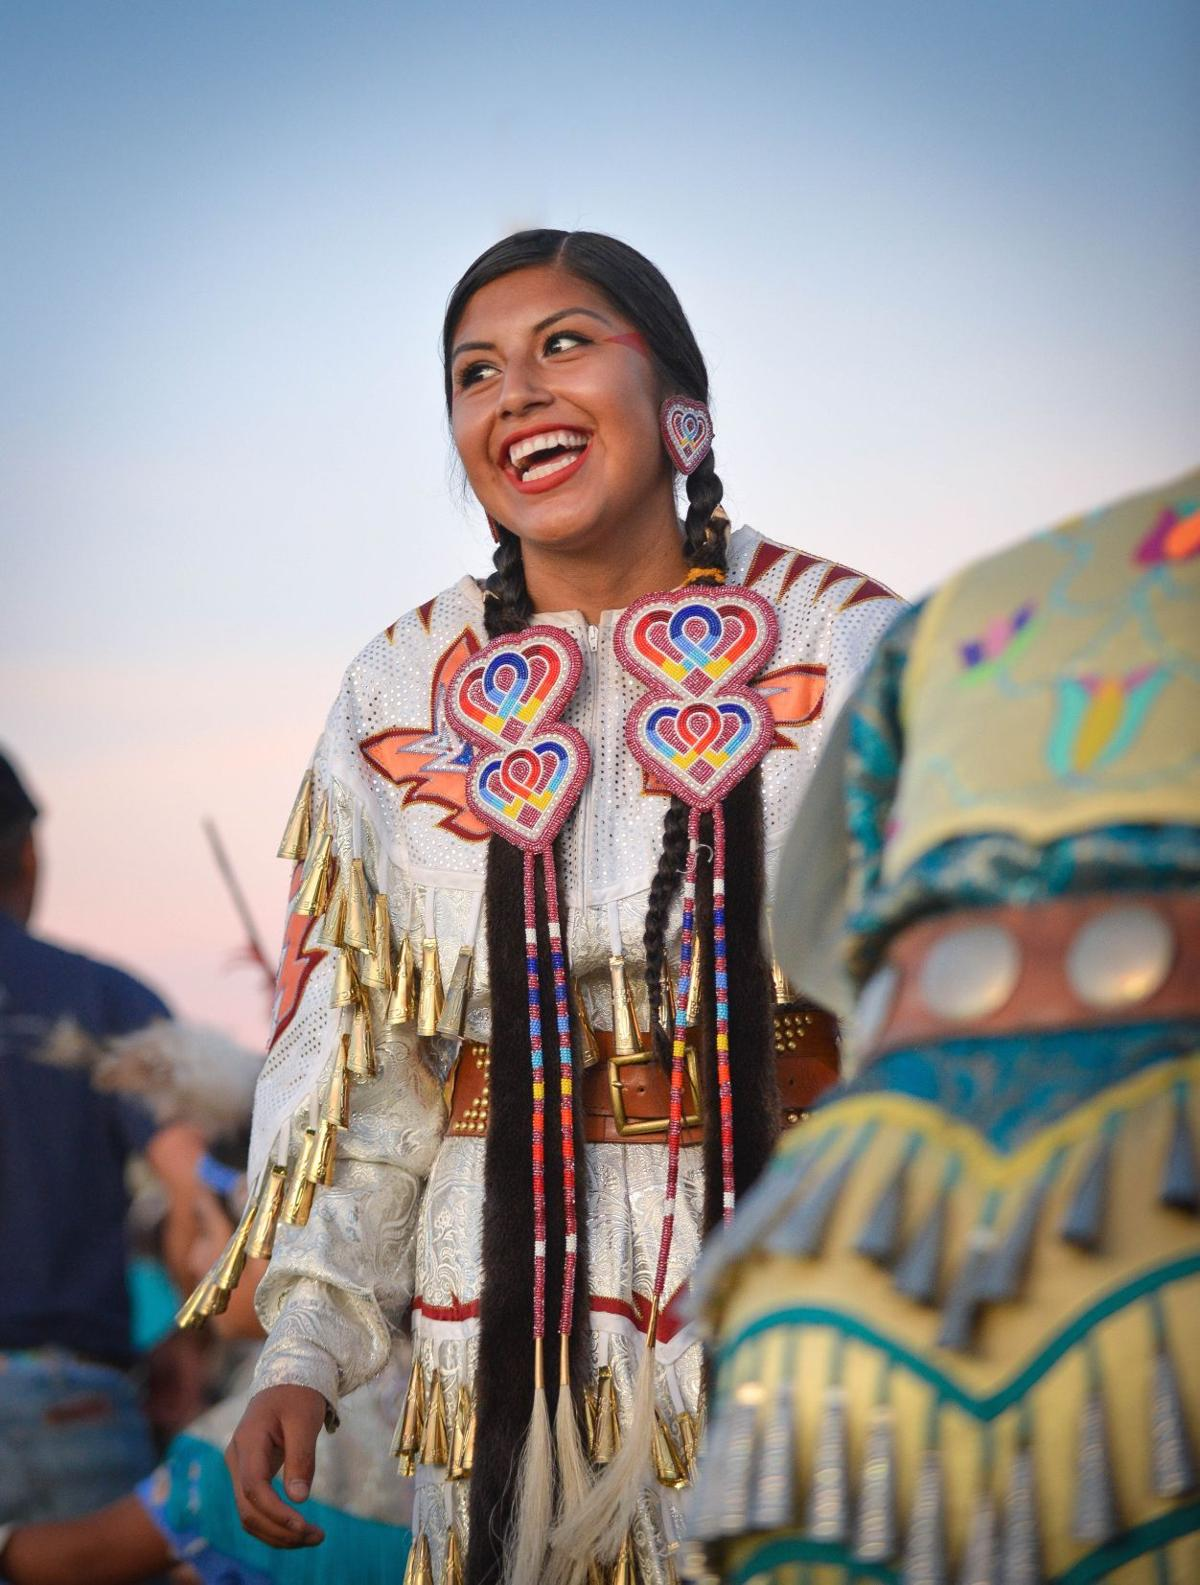 Photos: Faces of Crow Fair | News | billingsgazette.com